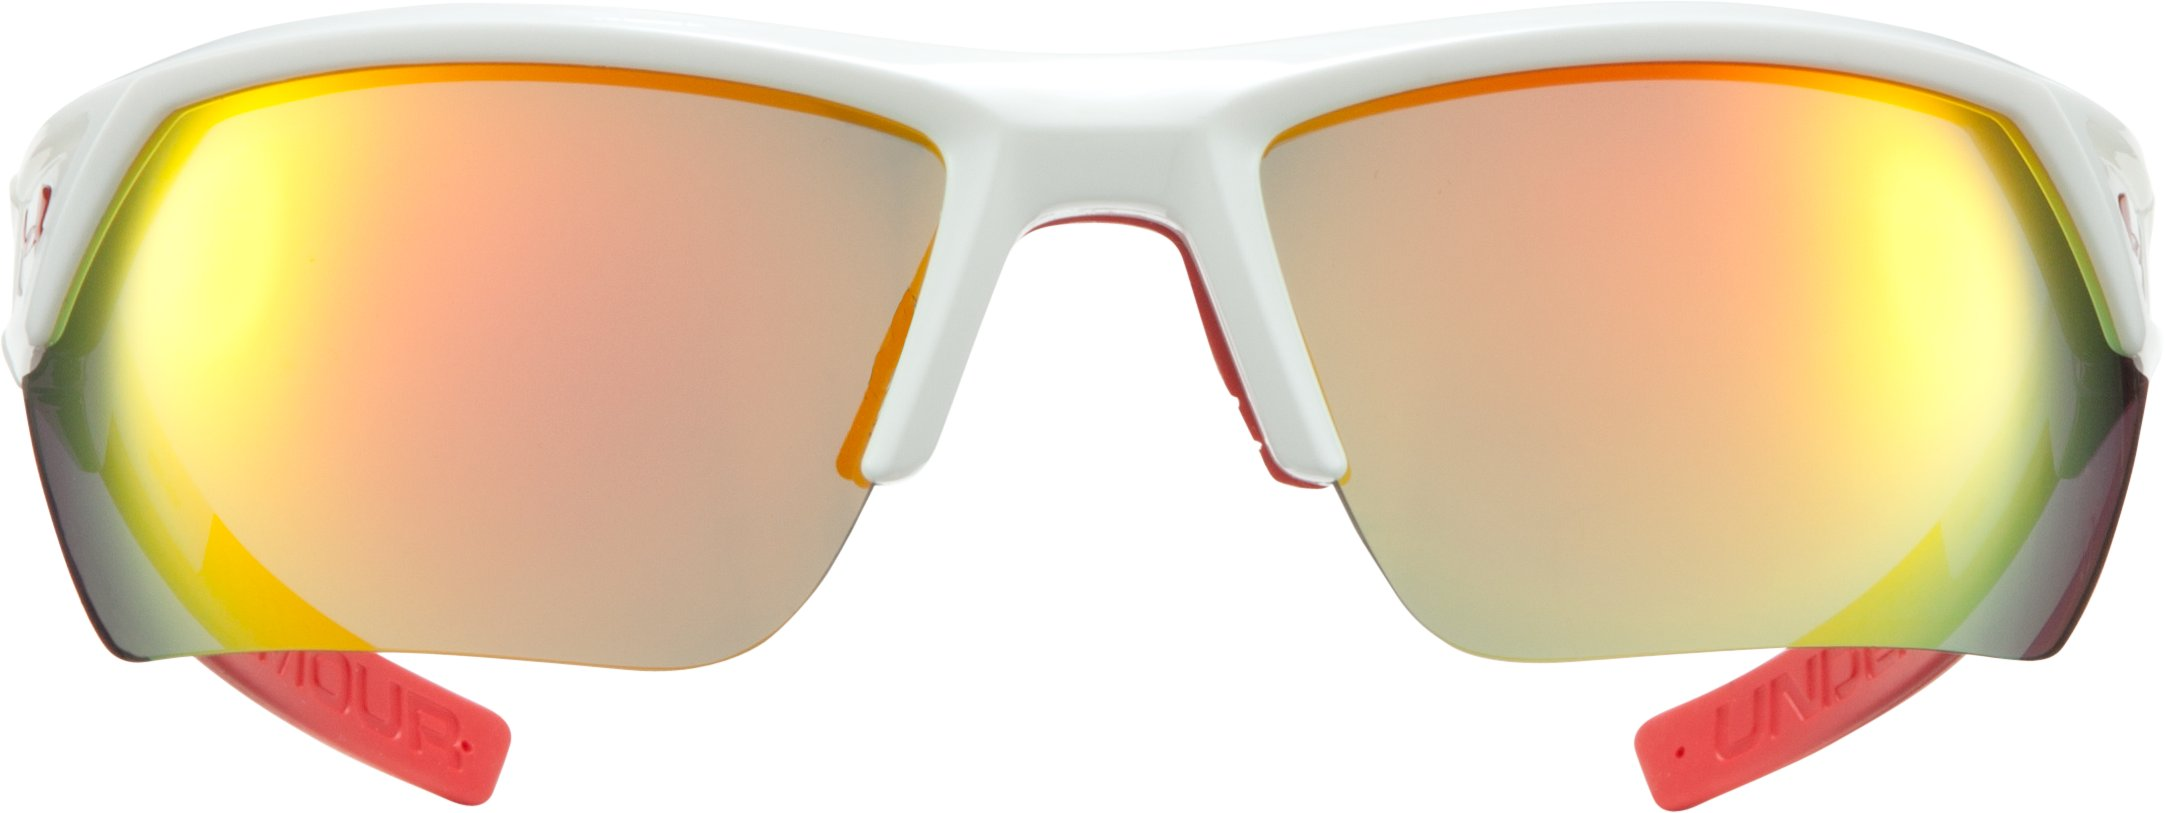 UA Igniter 2.0 Sunglasses, Shiny White